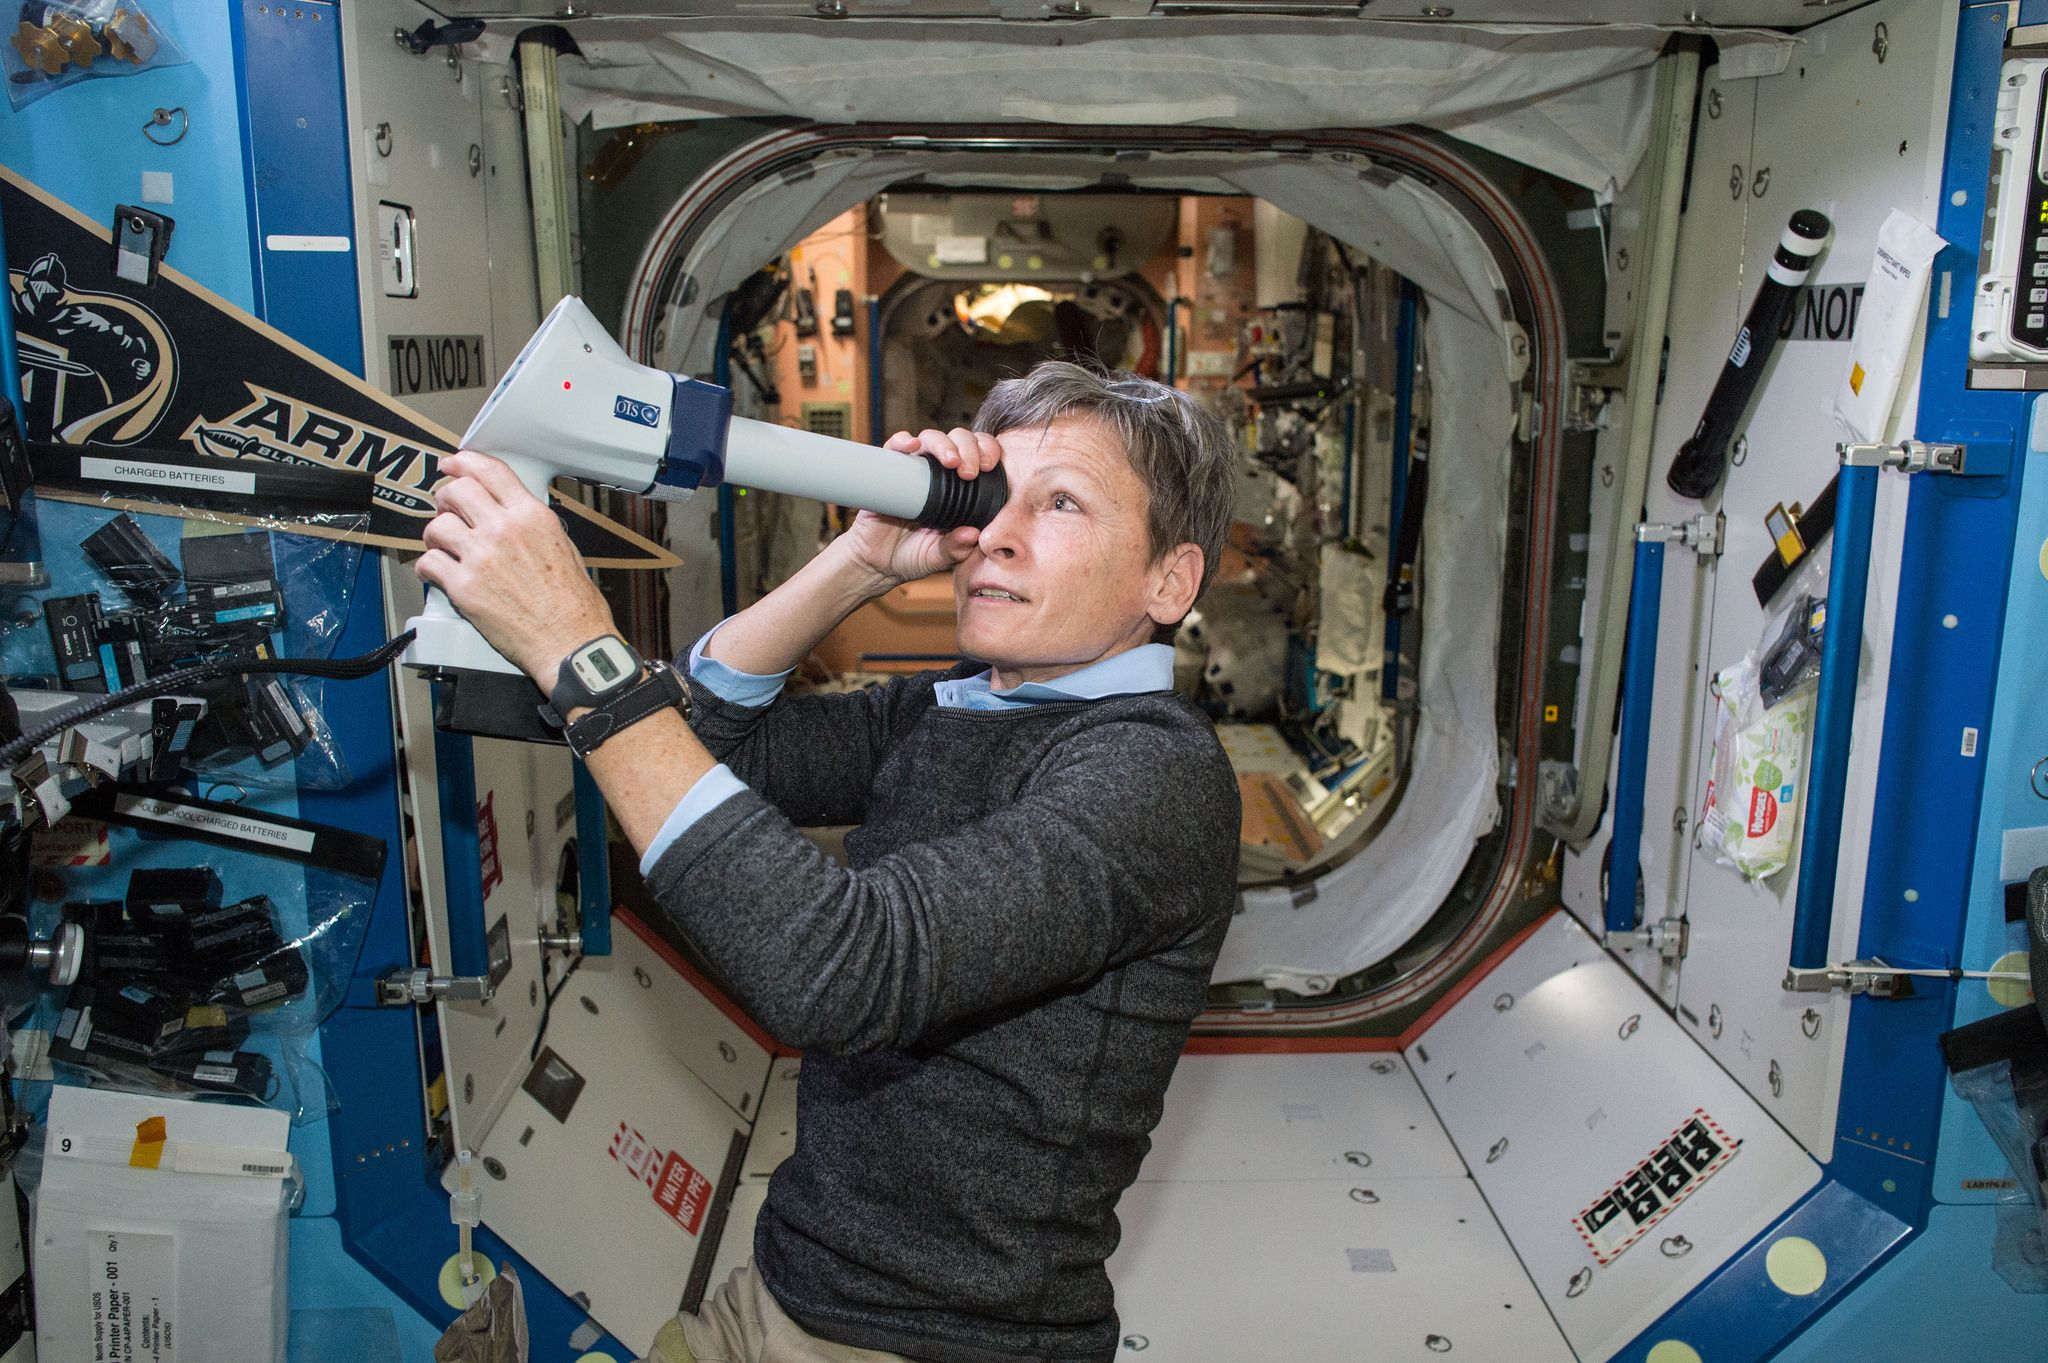 Astronaut Peggy Whitson Breaks Record After Record Nasa